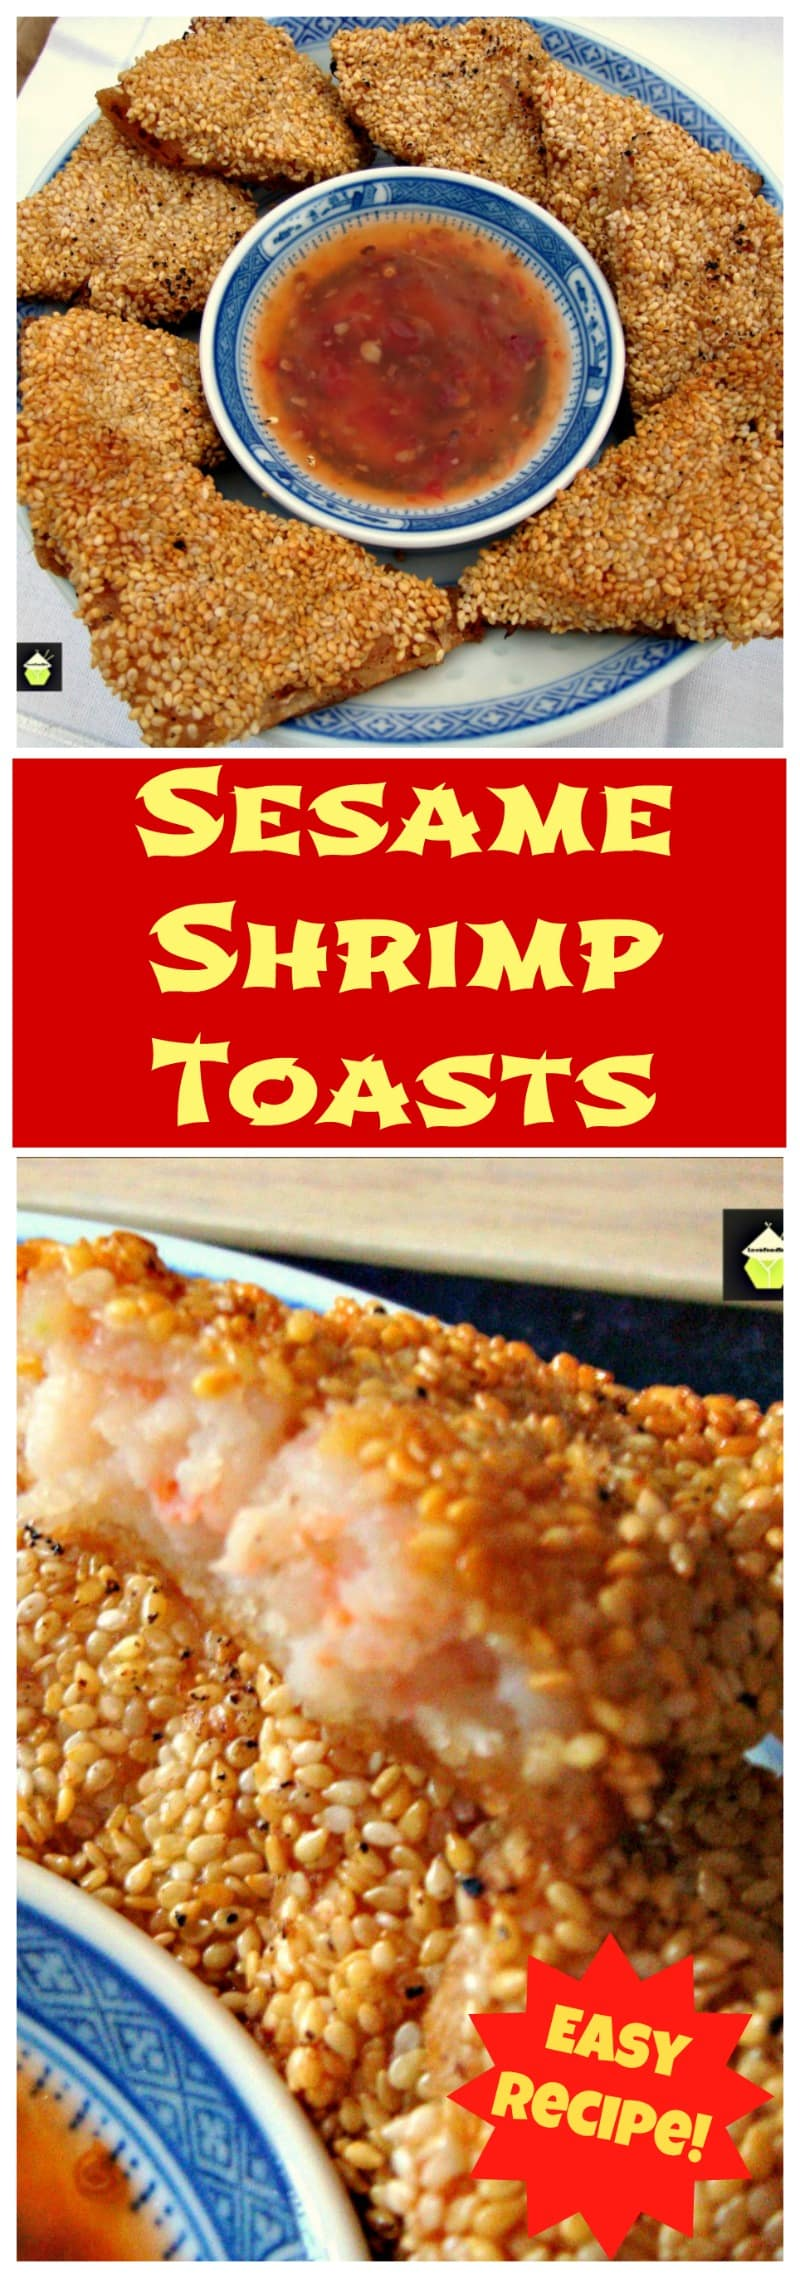 Sesame Shrimp / Prawn Toasts. These are a very popular little Asian appetizer, great for parties, or to have as a side with a nice soup.Easy recipe and budget friendly too!